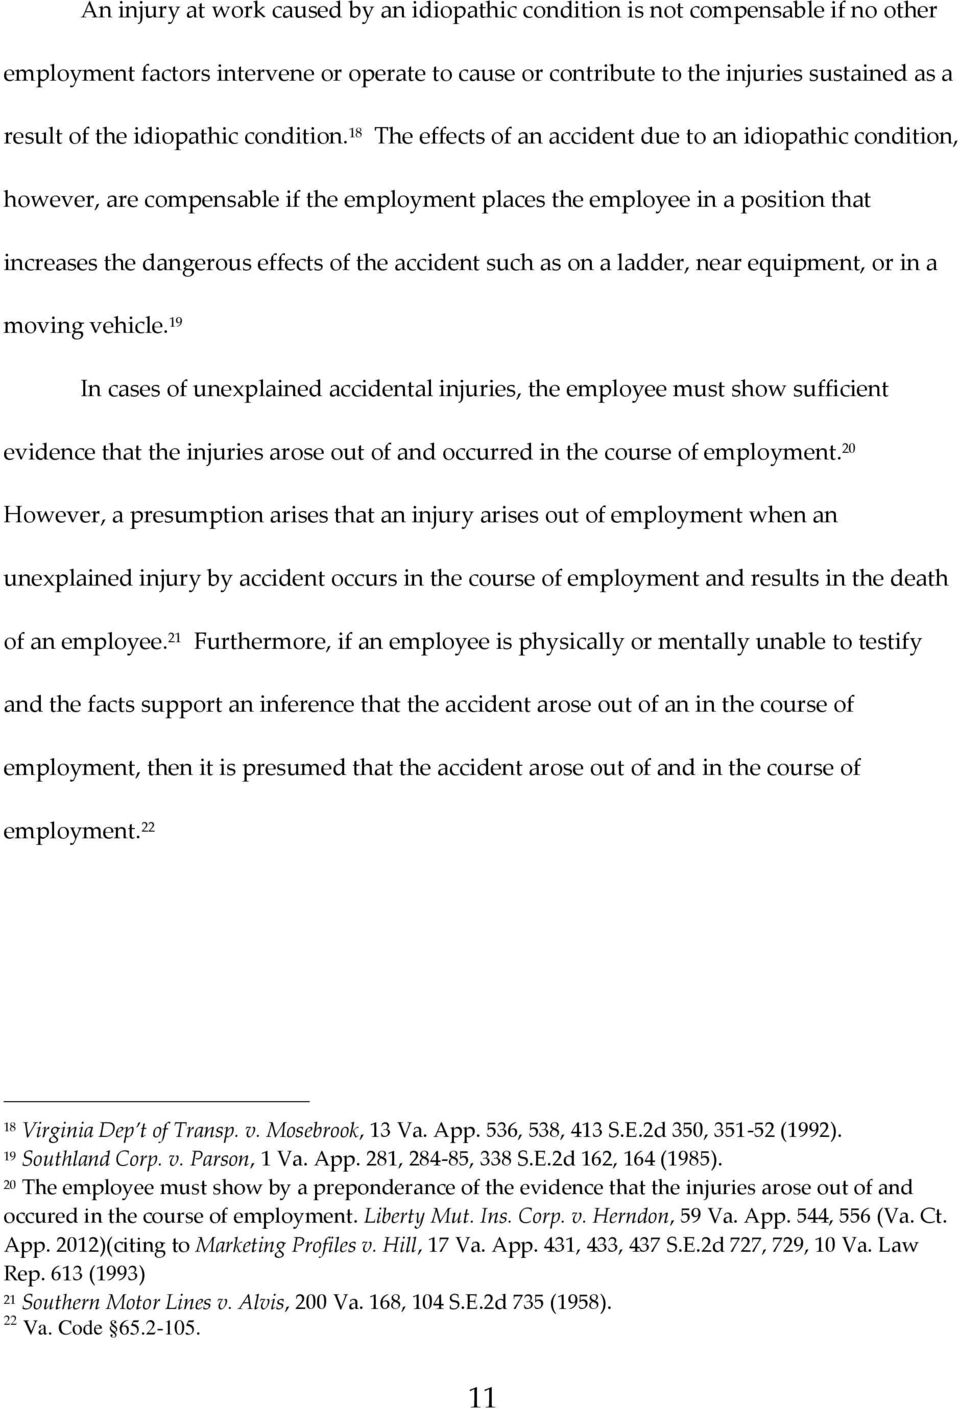 18 The effects of an accident due to an idiopathic condition, however, are compensable if the employment places the employee in a position that increases the dangerous effects of the accident such as